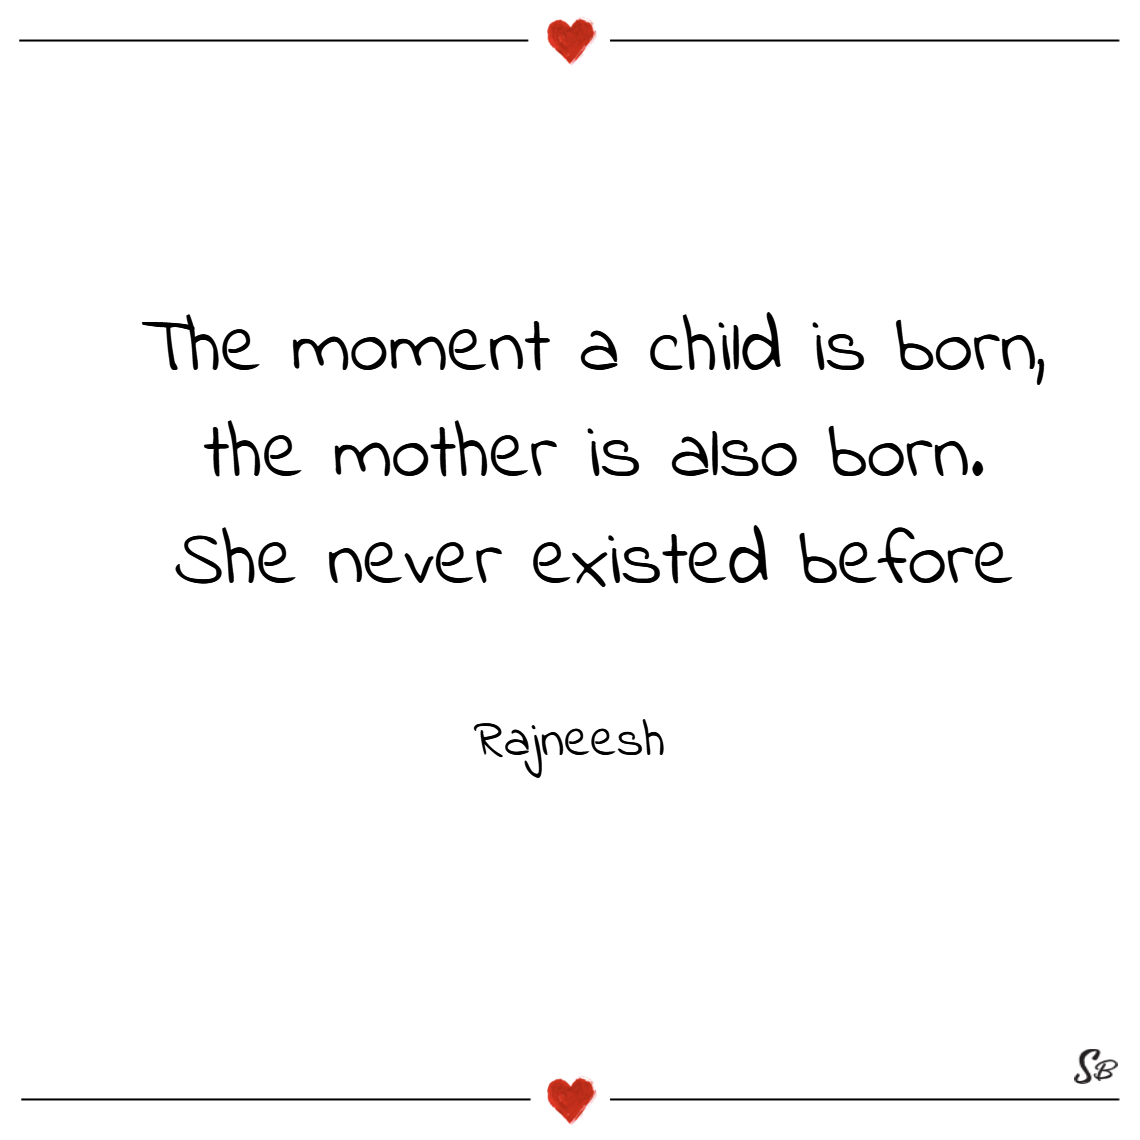 The moment a child is born, the mother is also born. she never existed before. – rajneesh